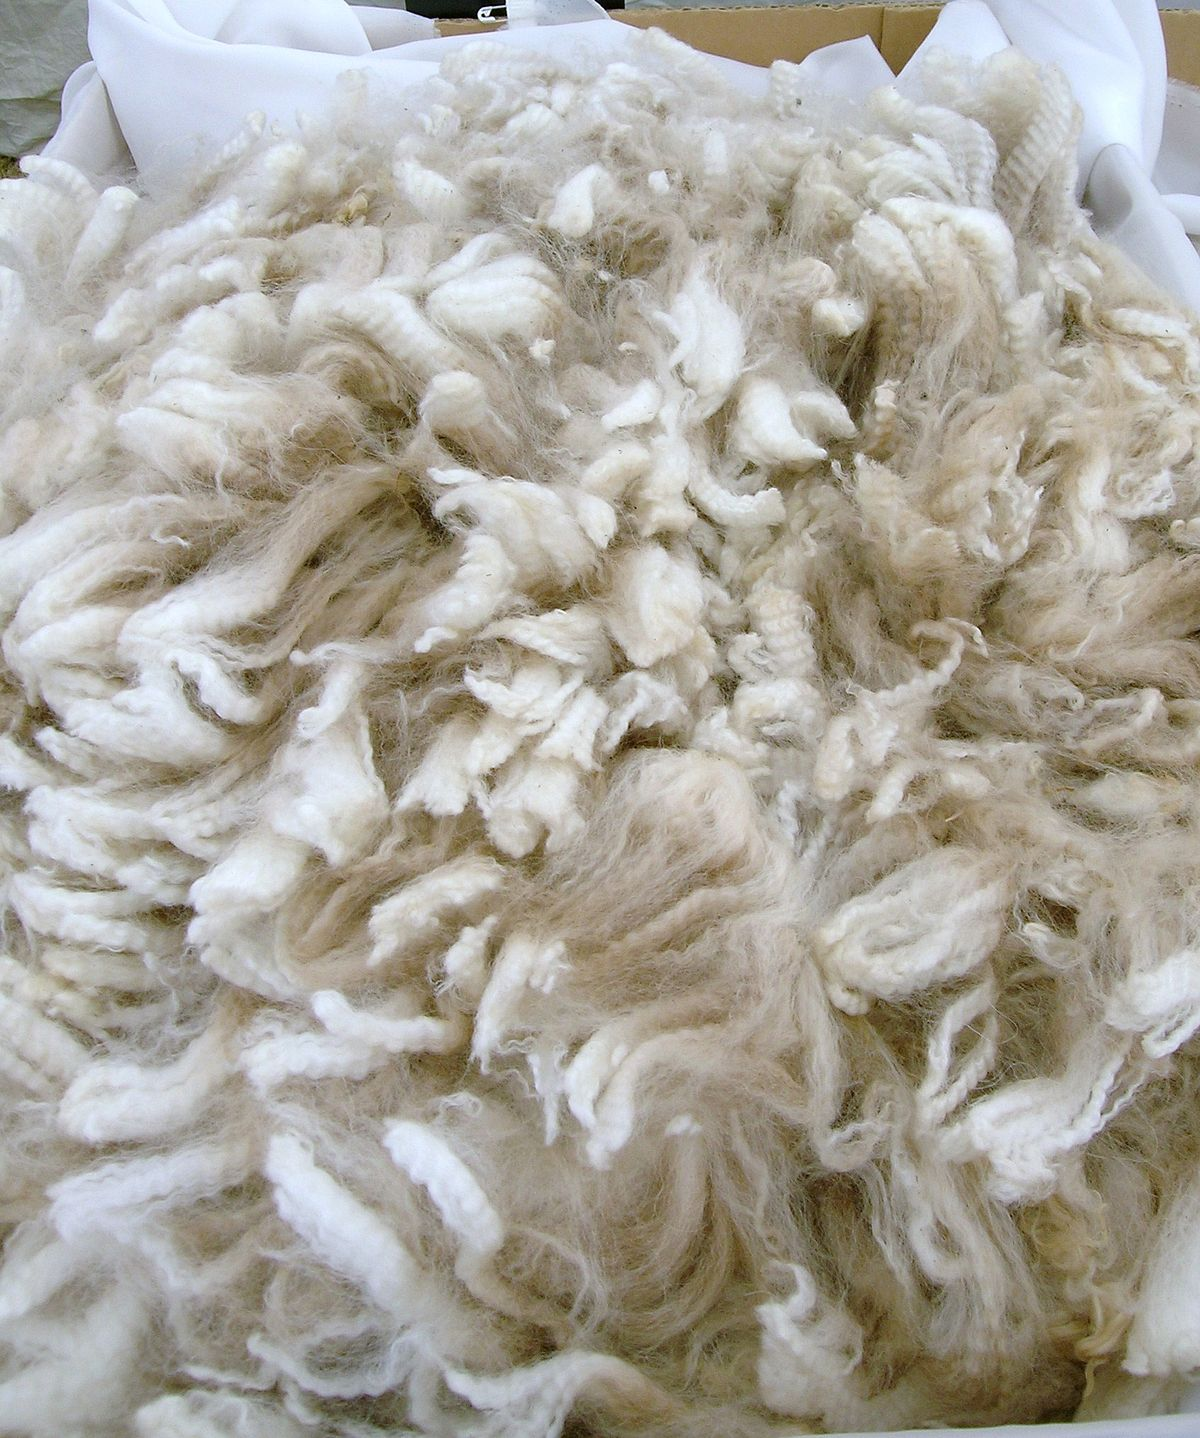 Wool Industry in Big Trouble, Action Needed Now